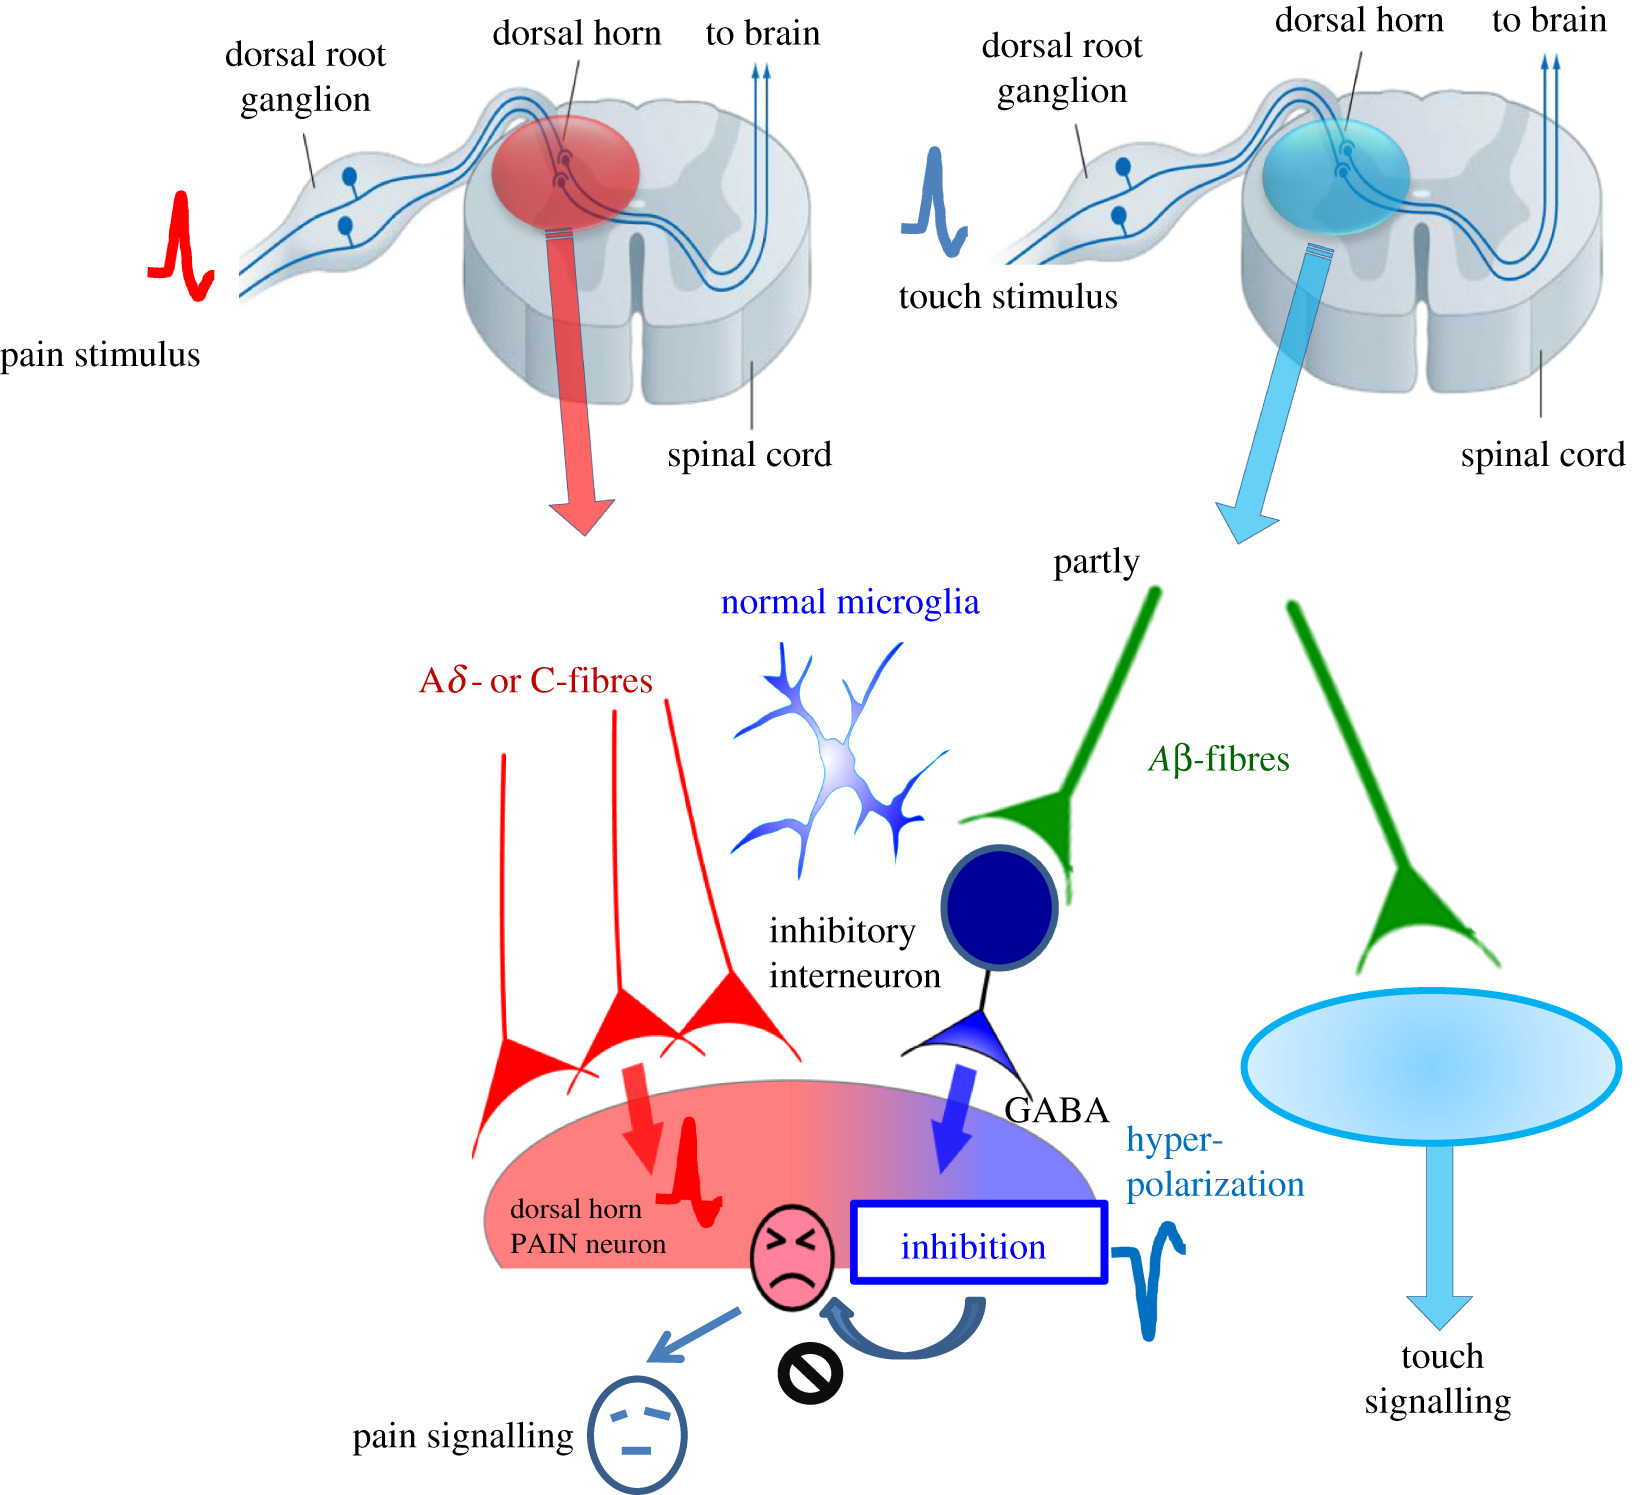 A state-of-the-art perspective on microgliopathic pain | Open Biology